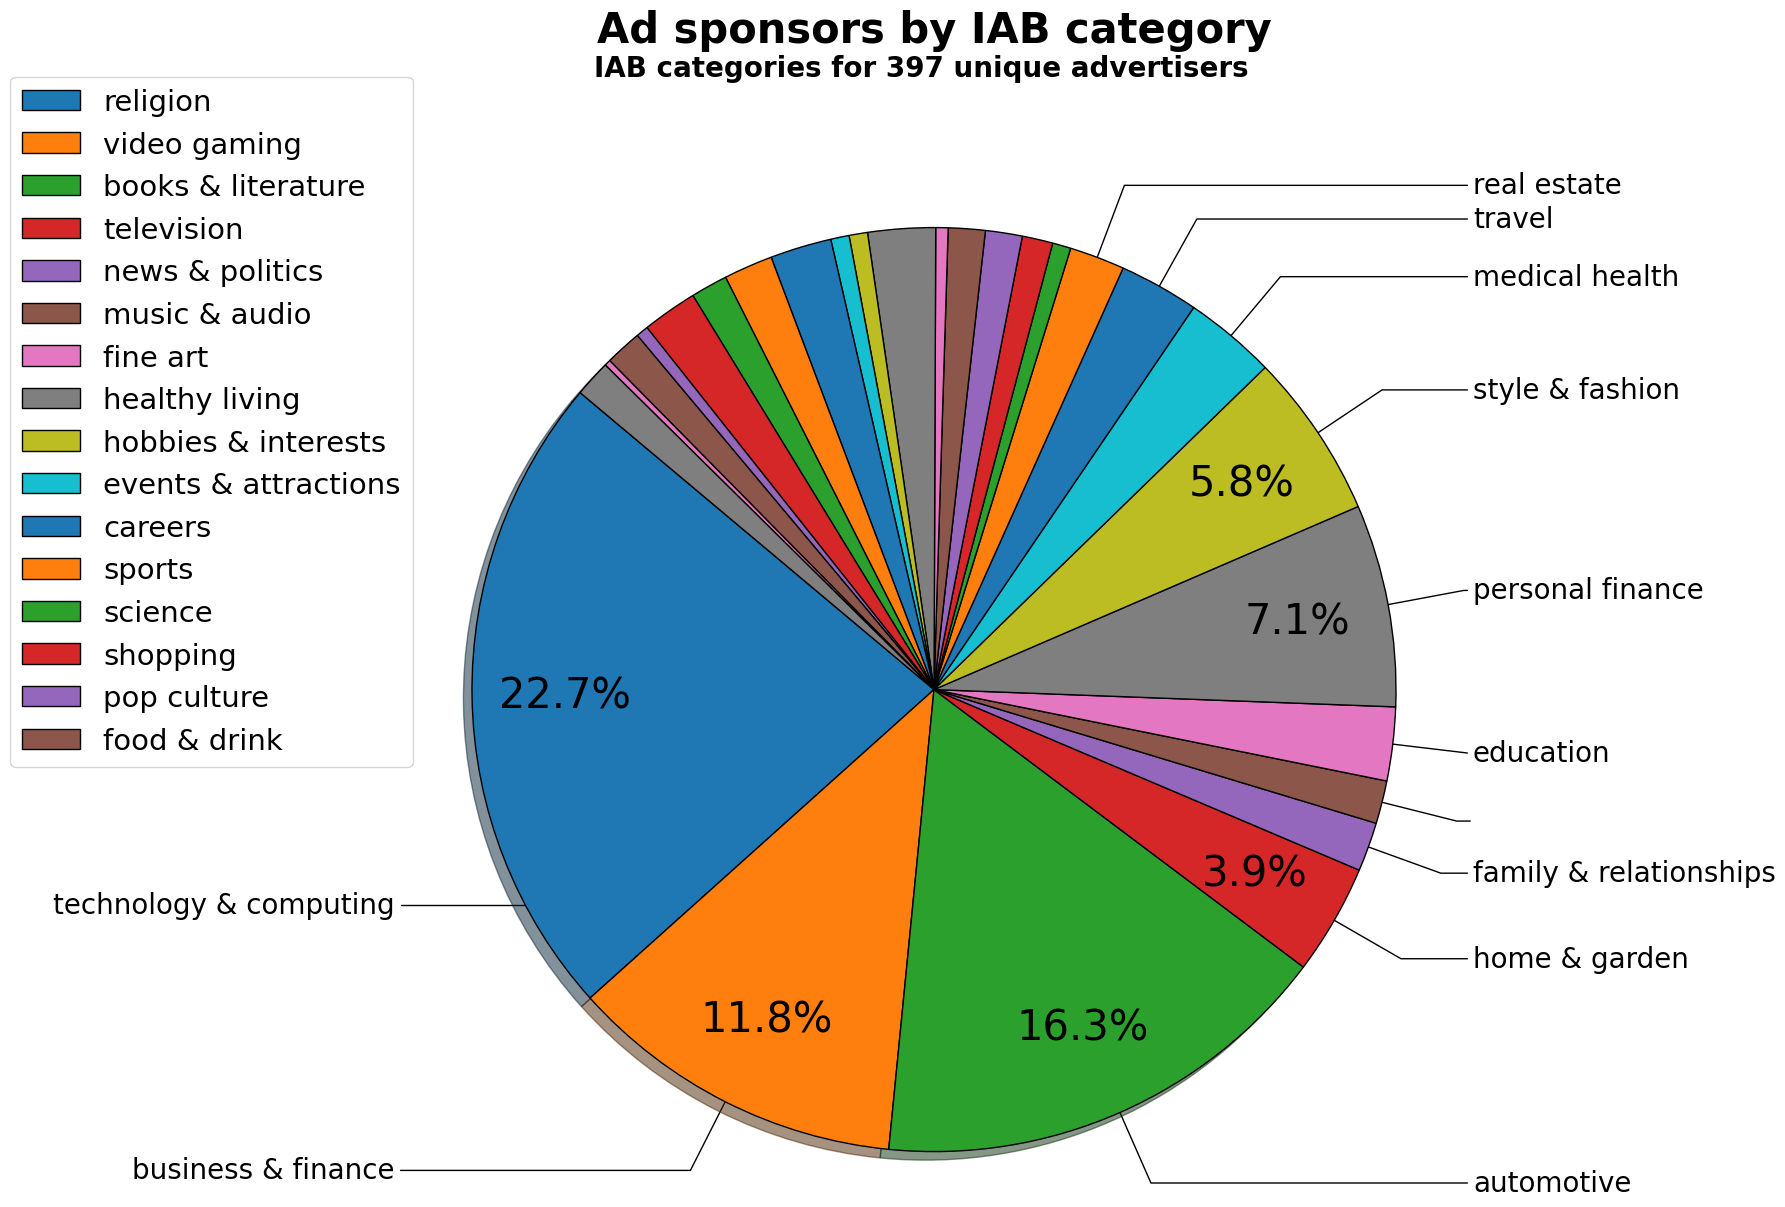 ads-by-category.png